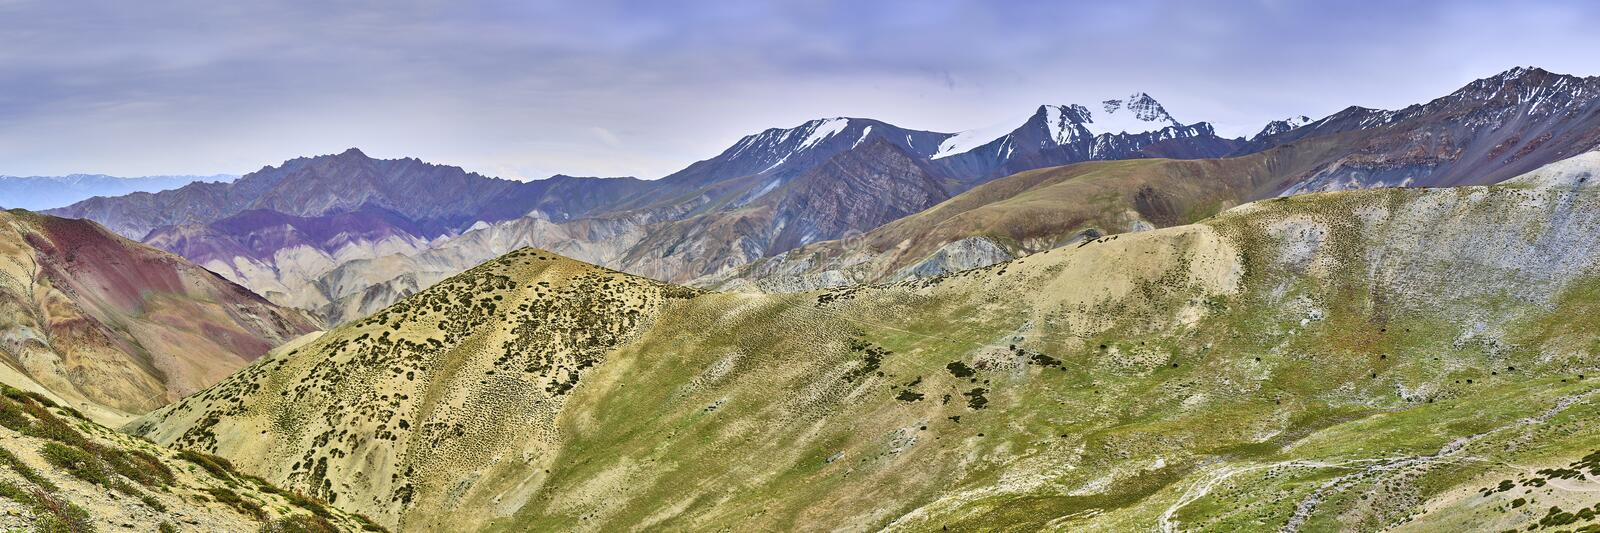 Beautiful colorful panoramic landscape taken from a Gandala pass in Himalaya mountains in Ladakh, India.  stock image